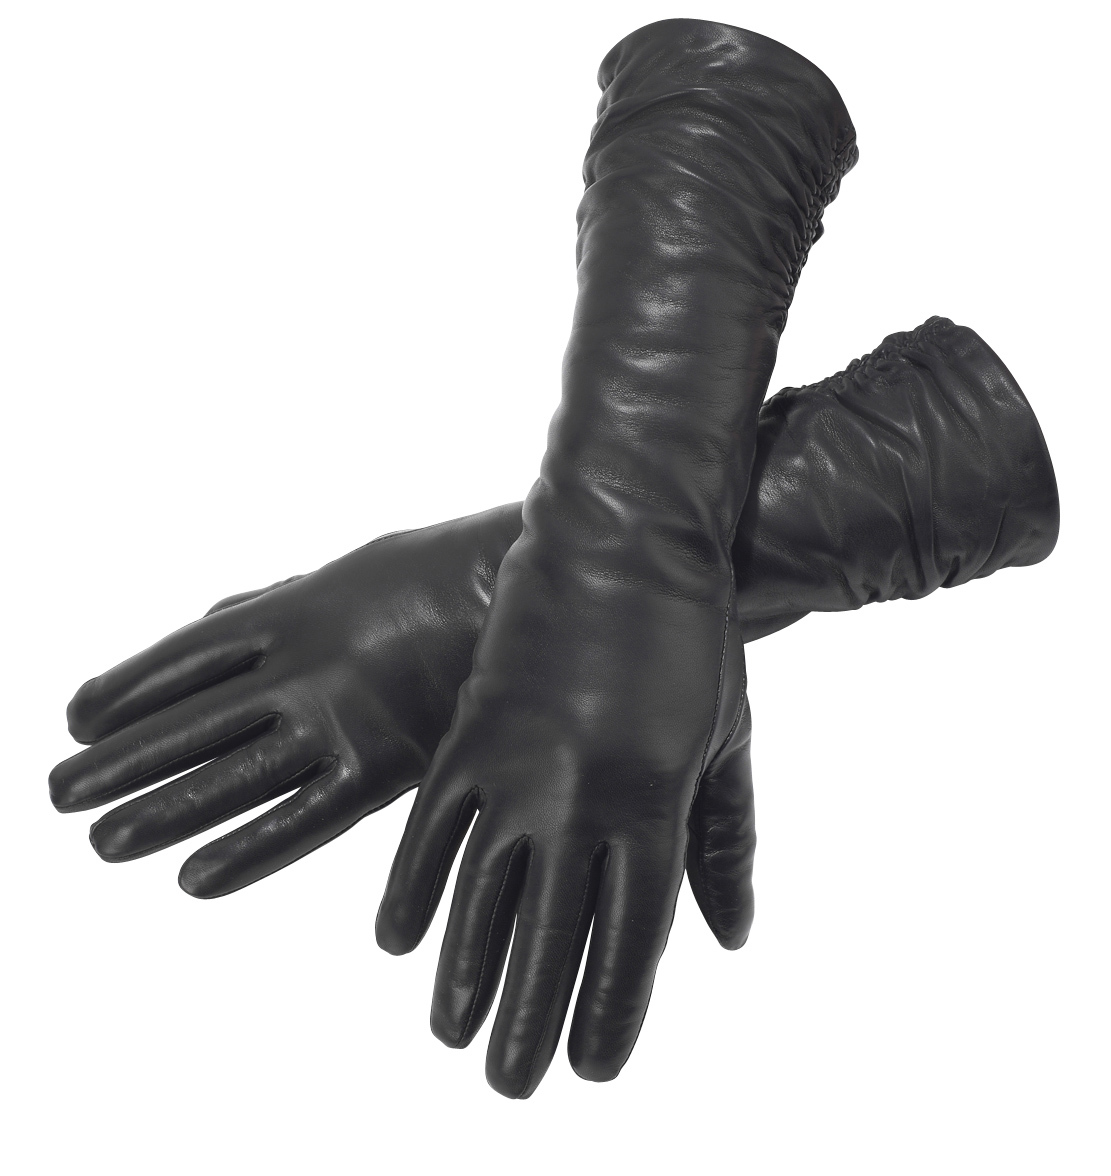 Womens leather gloves toronto - Black Leather Long Ruched Gloves